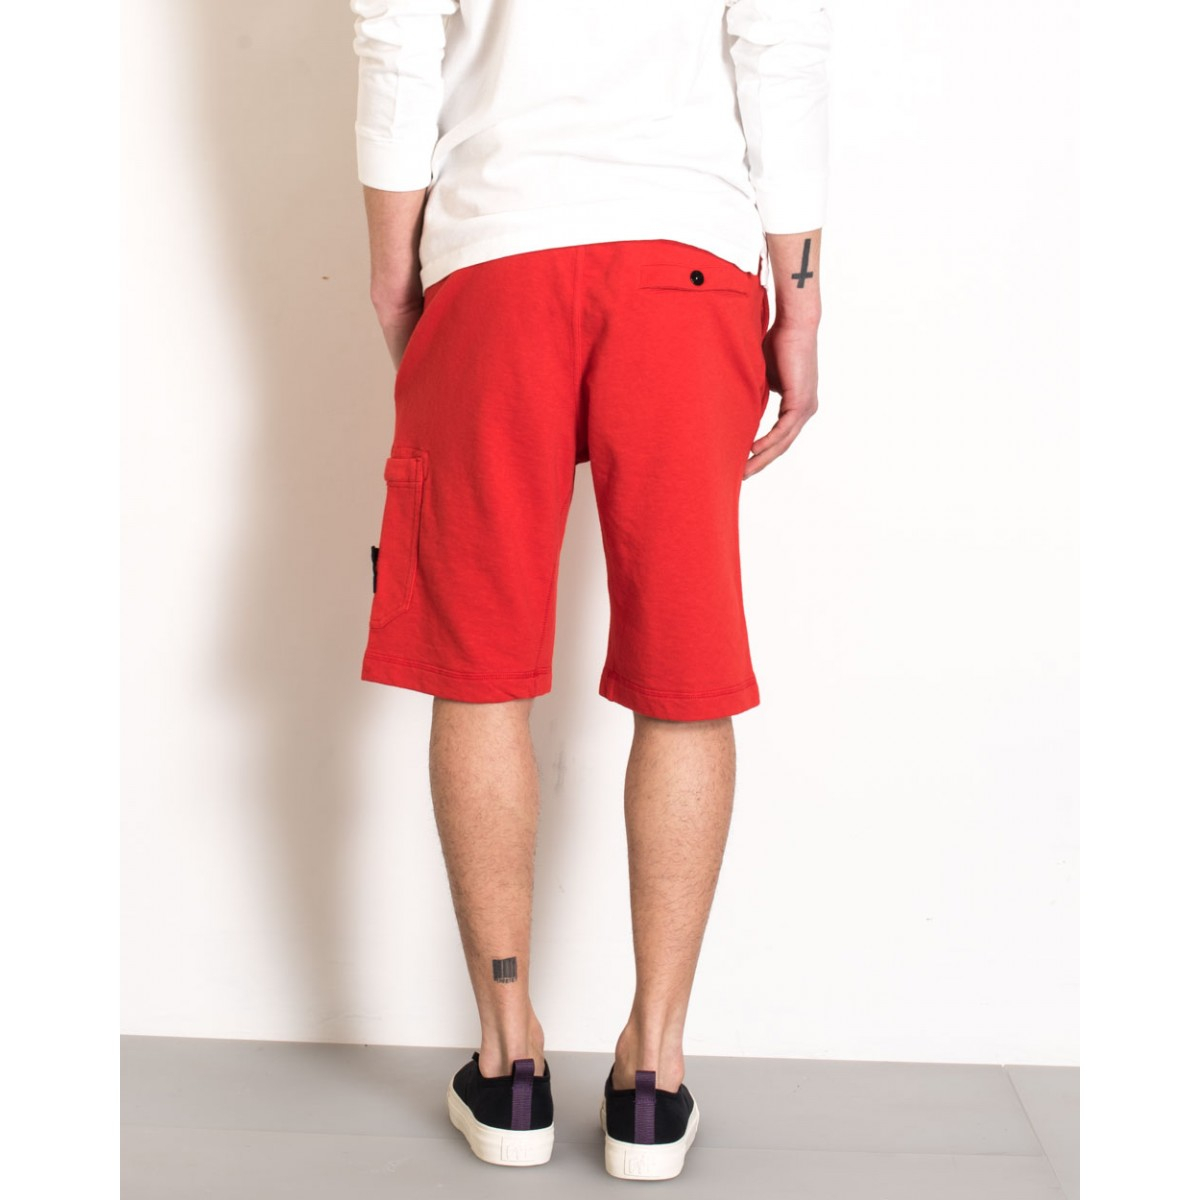 Stone island Cotton Jogging Shorts in Red for Men - Lyst